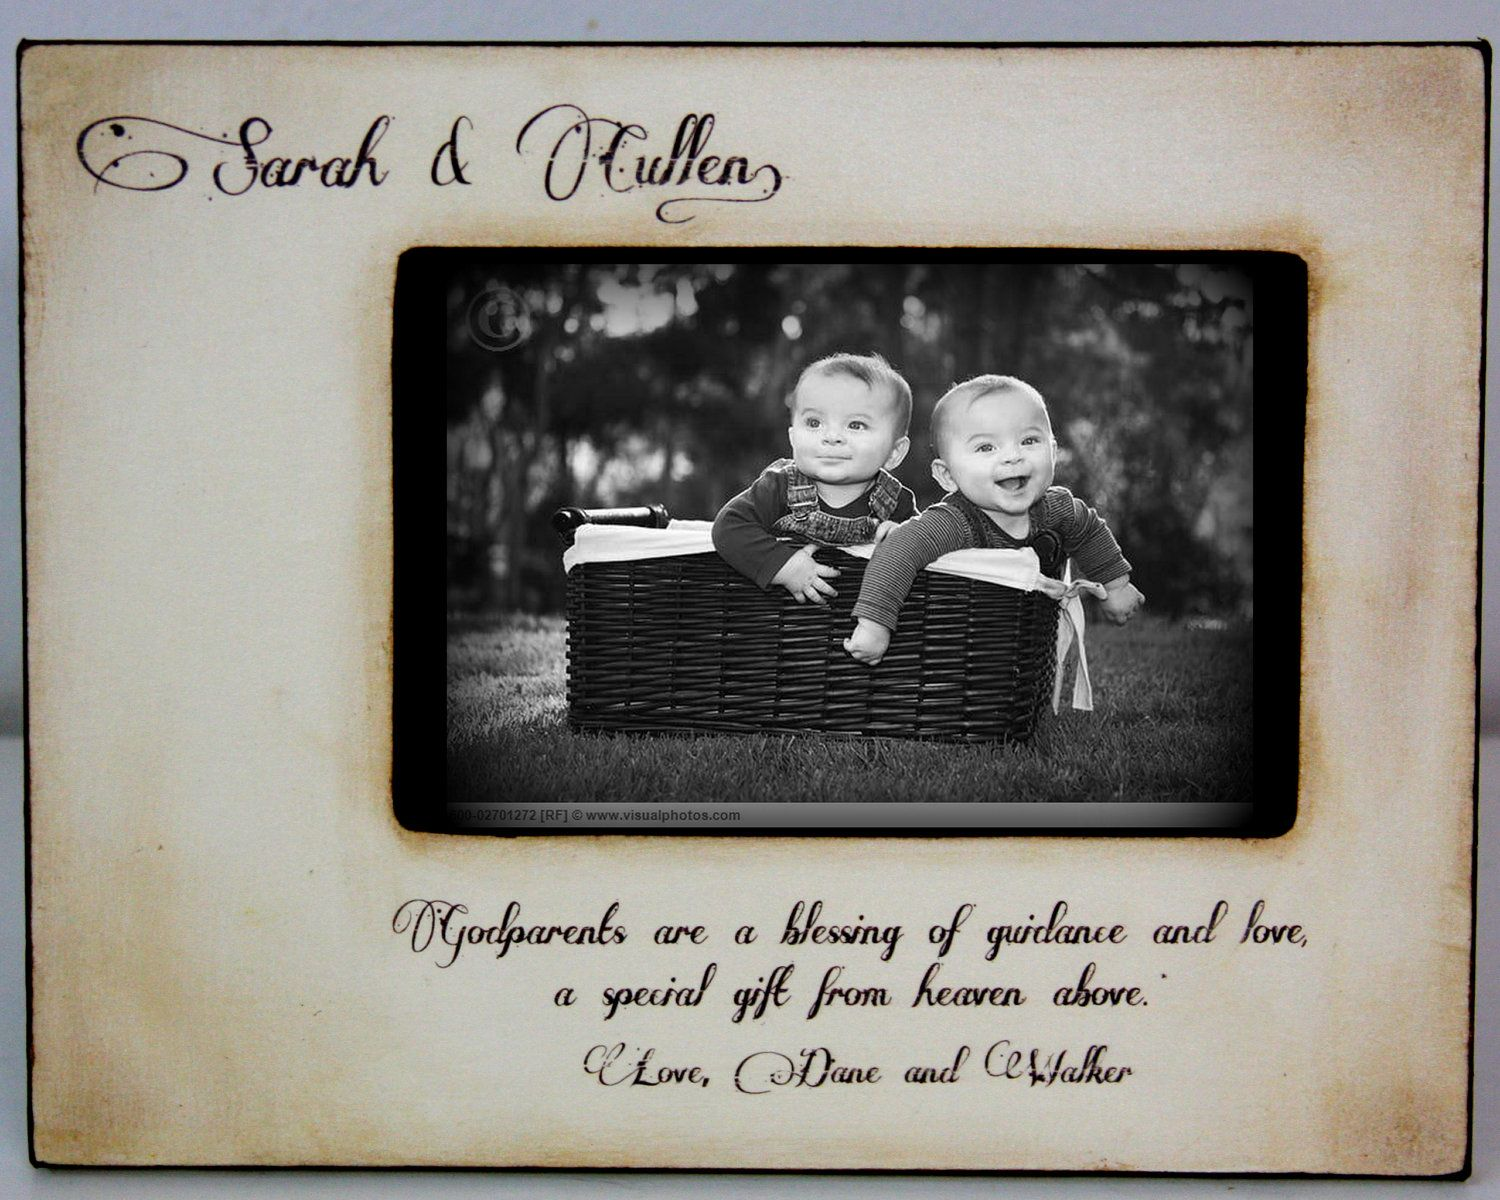 rustic vintage godparents godfather godmother gift personalized picture frame 4x6 religious keepsake wdiamond accent